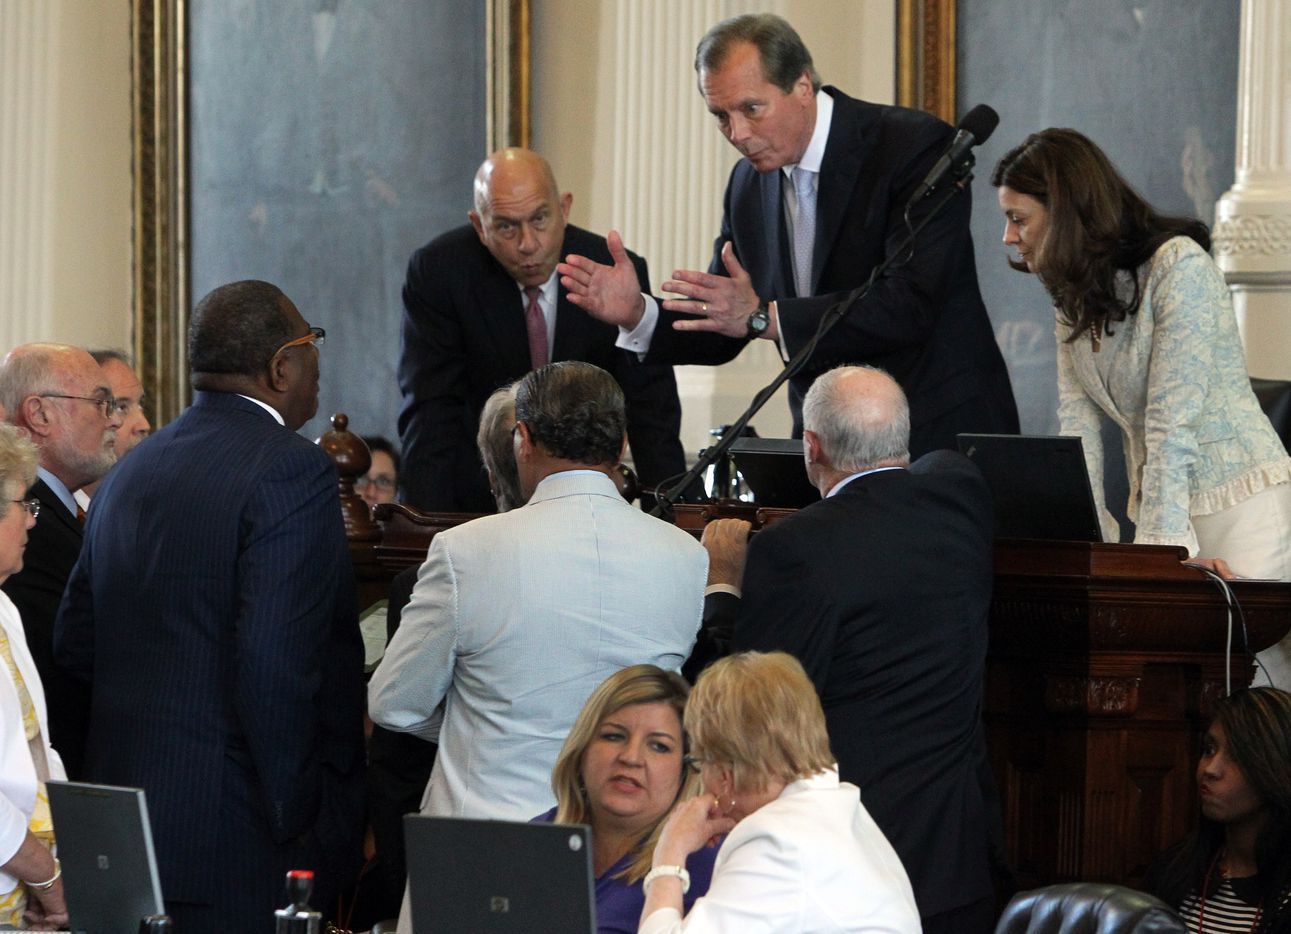 Lieutenant Governor David Dewhurst holds a quick conference while the filibuster is halted for a moment to consider an objection during the final day of the legislative special session as the Senate considers an abortion bill on Tuesday, June 25, 2013.  (Louis DeLuca/Dallas Morning News)